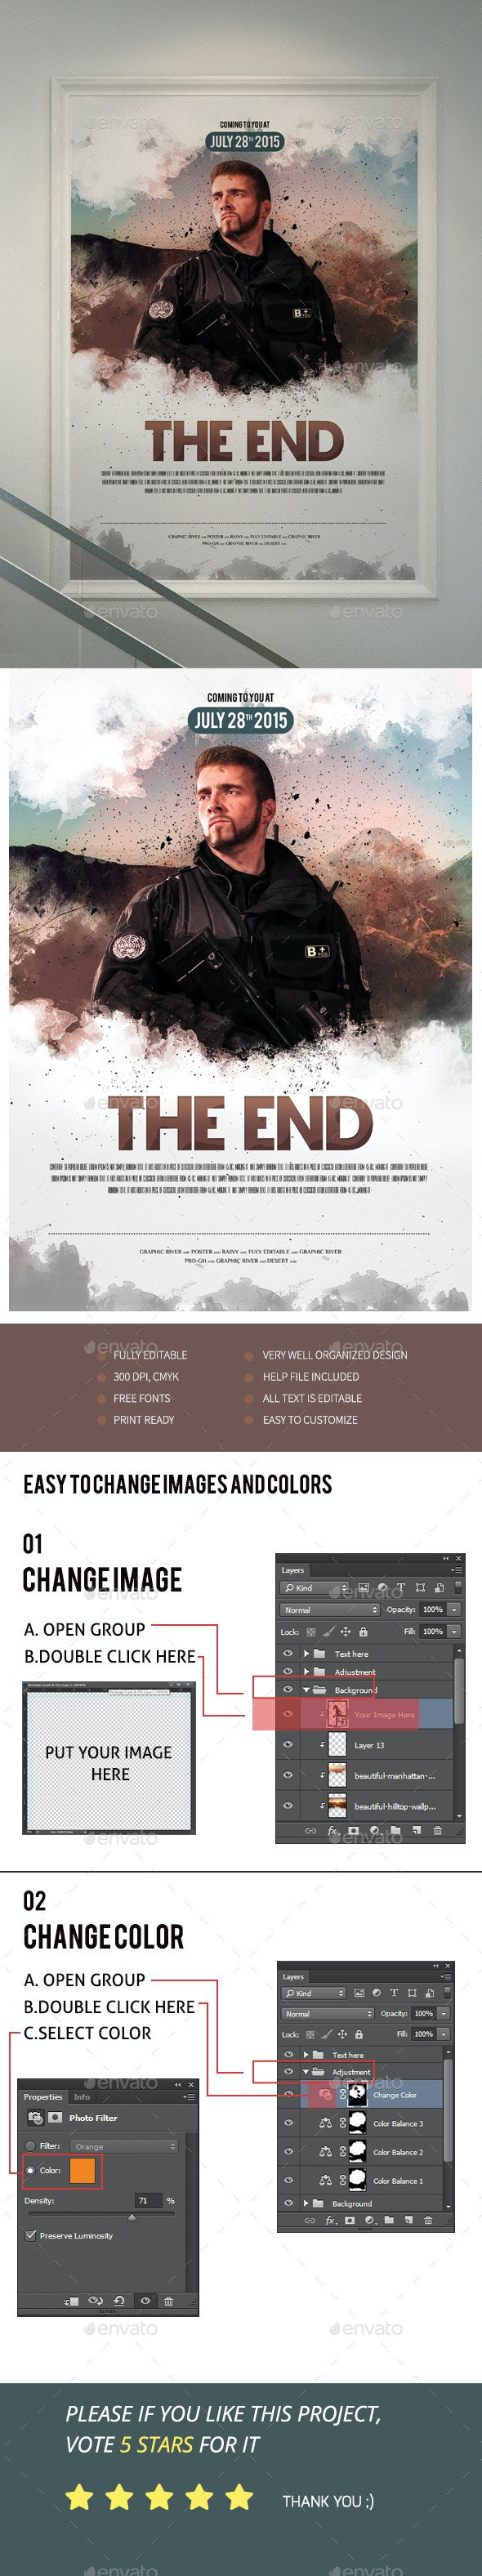 The End Movie Poster/Flyer II - Events Flyers